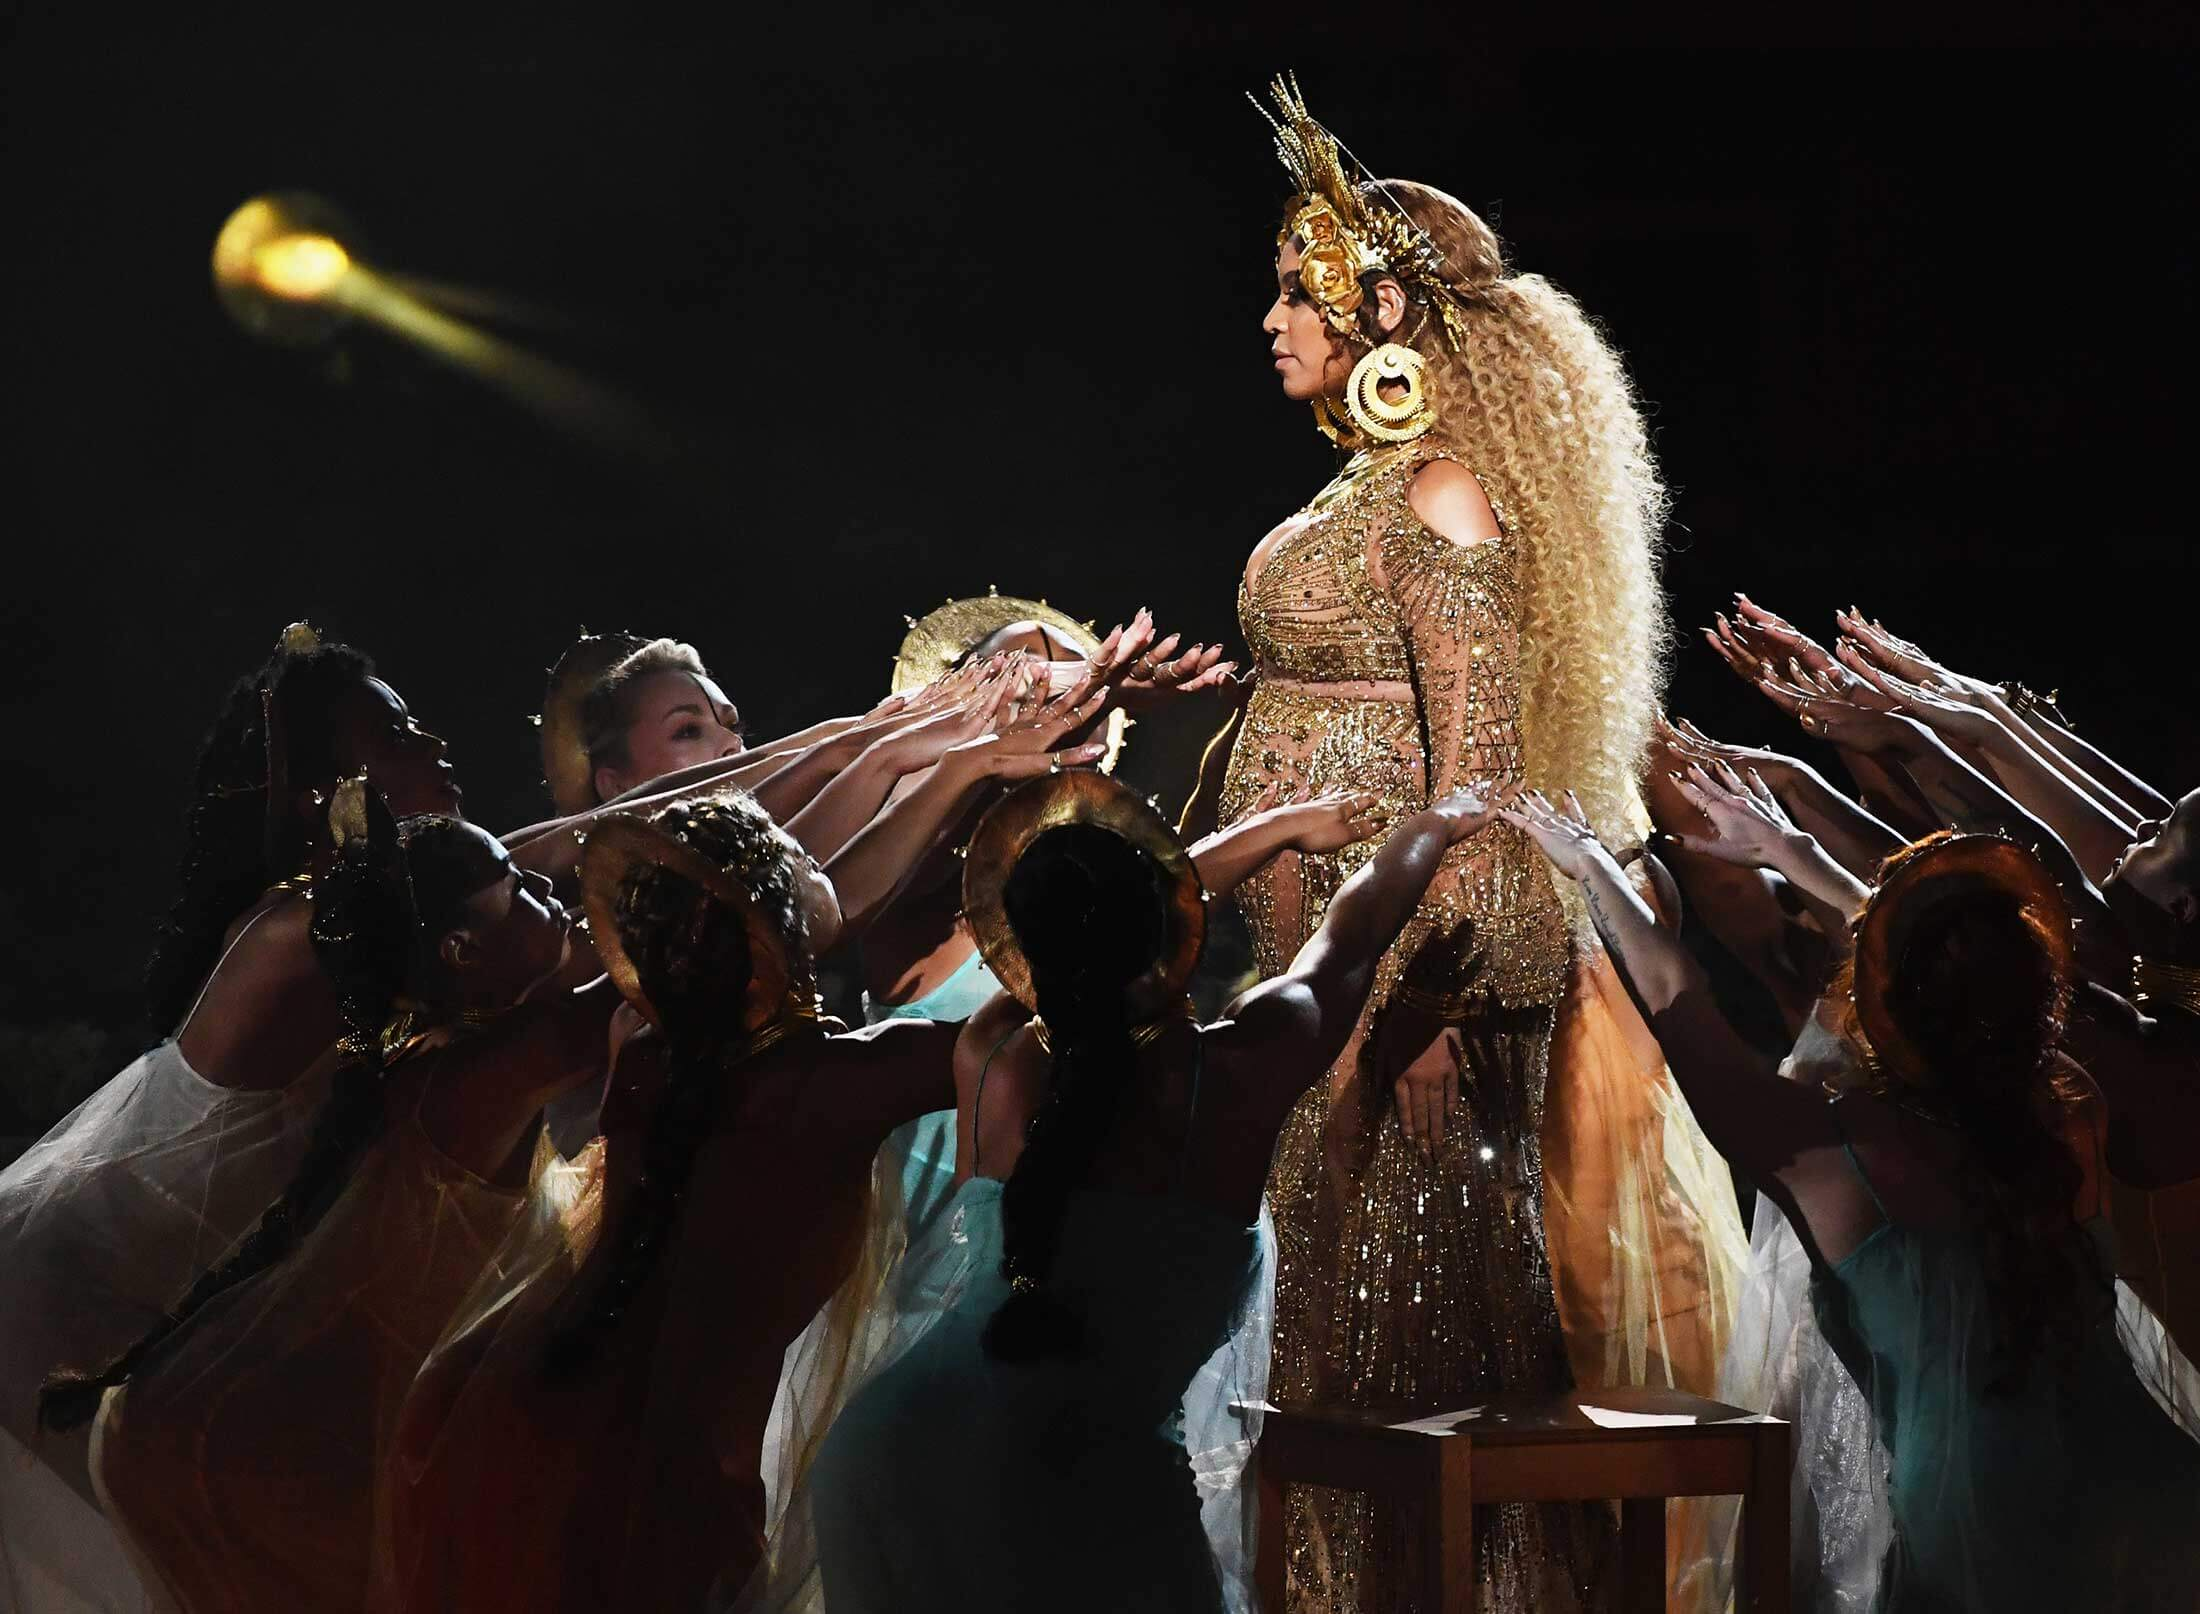 Beyonce, (Kevin Winter / Getty). <br/> Beyoncé invokes religious iconography for her 2017 performance at the Grammy Awards.